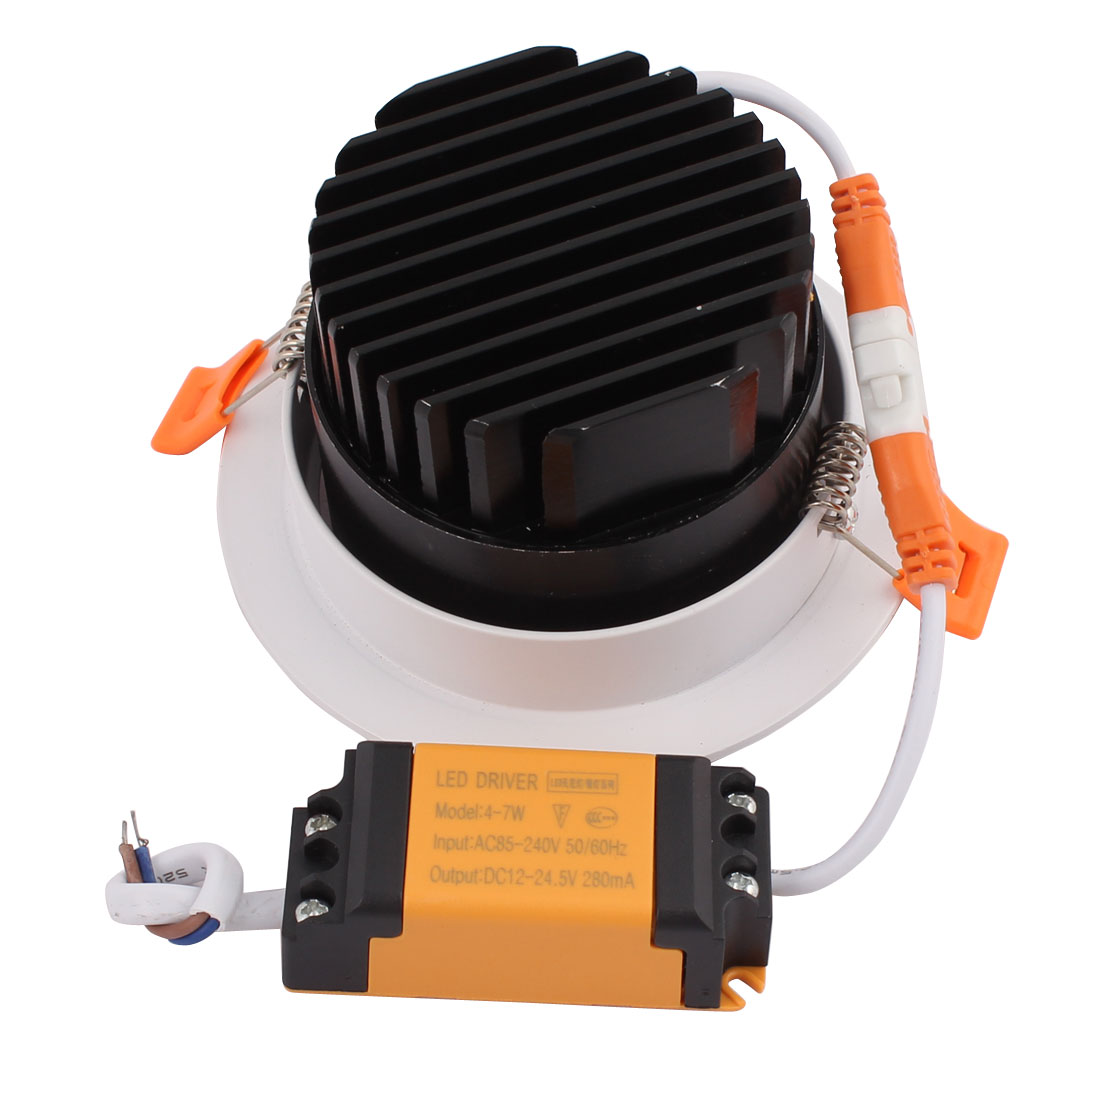 AC85-265V 7W 4000K 24 Degree White Black  COB Ceiling Lamp with  Driver - image 1 of 3